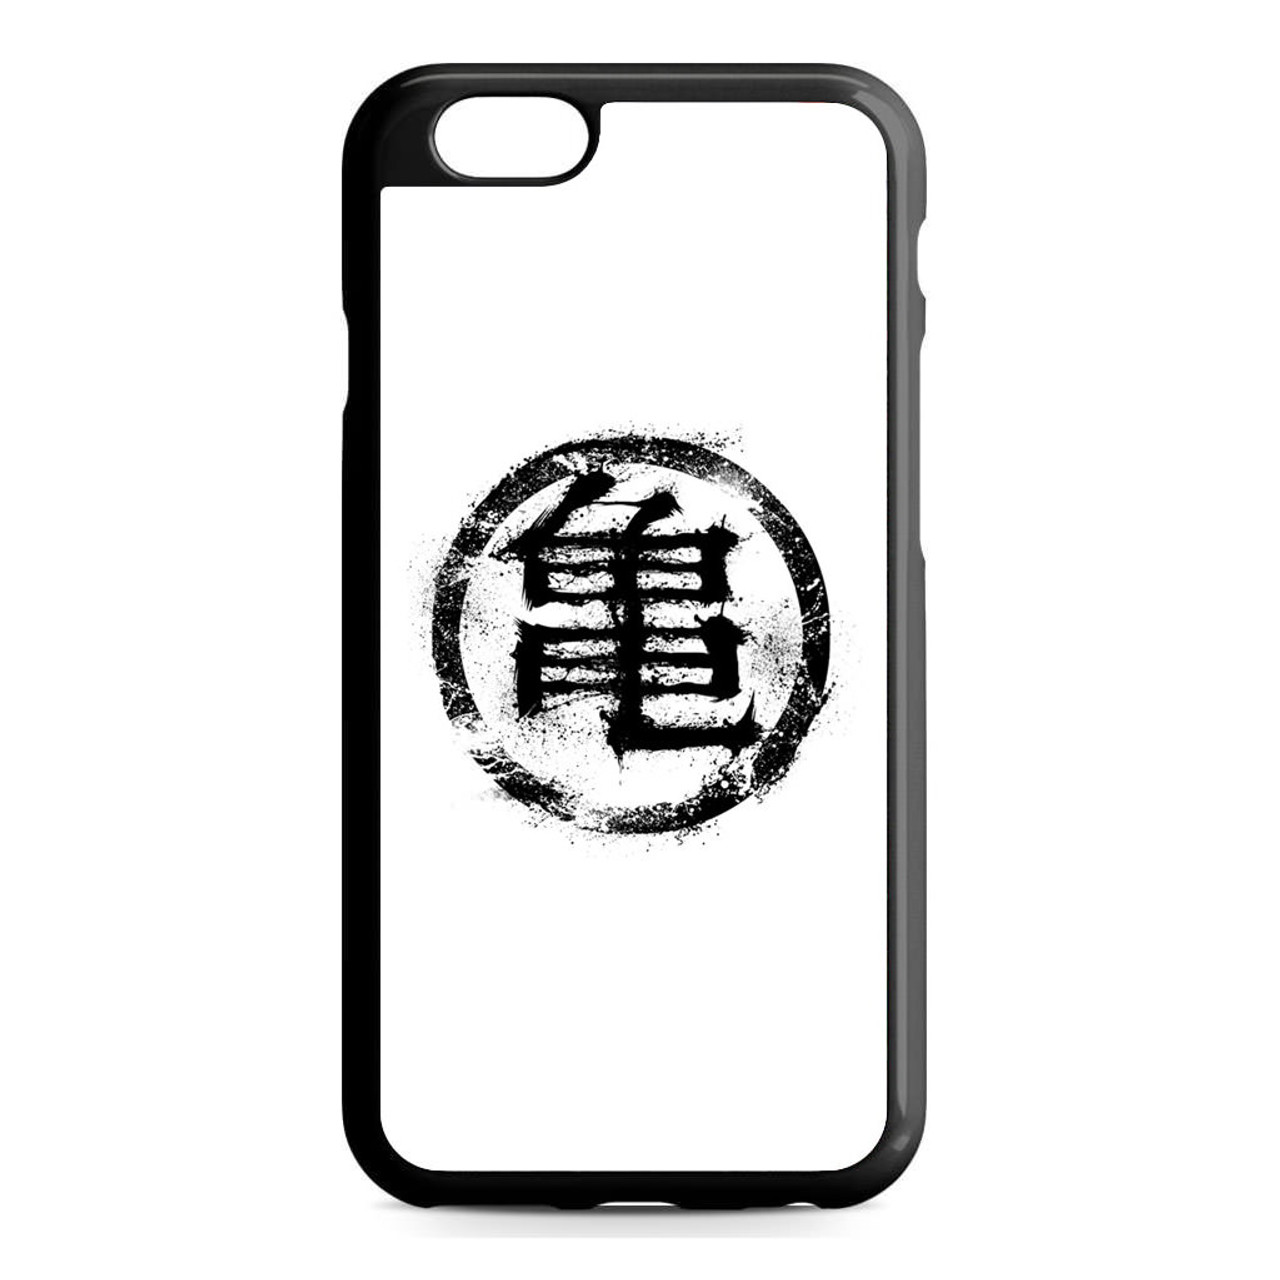 iphone 6s case for gym